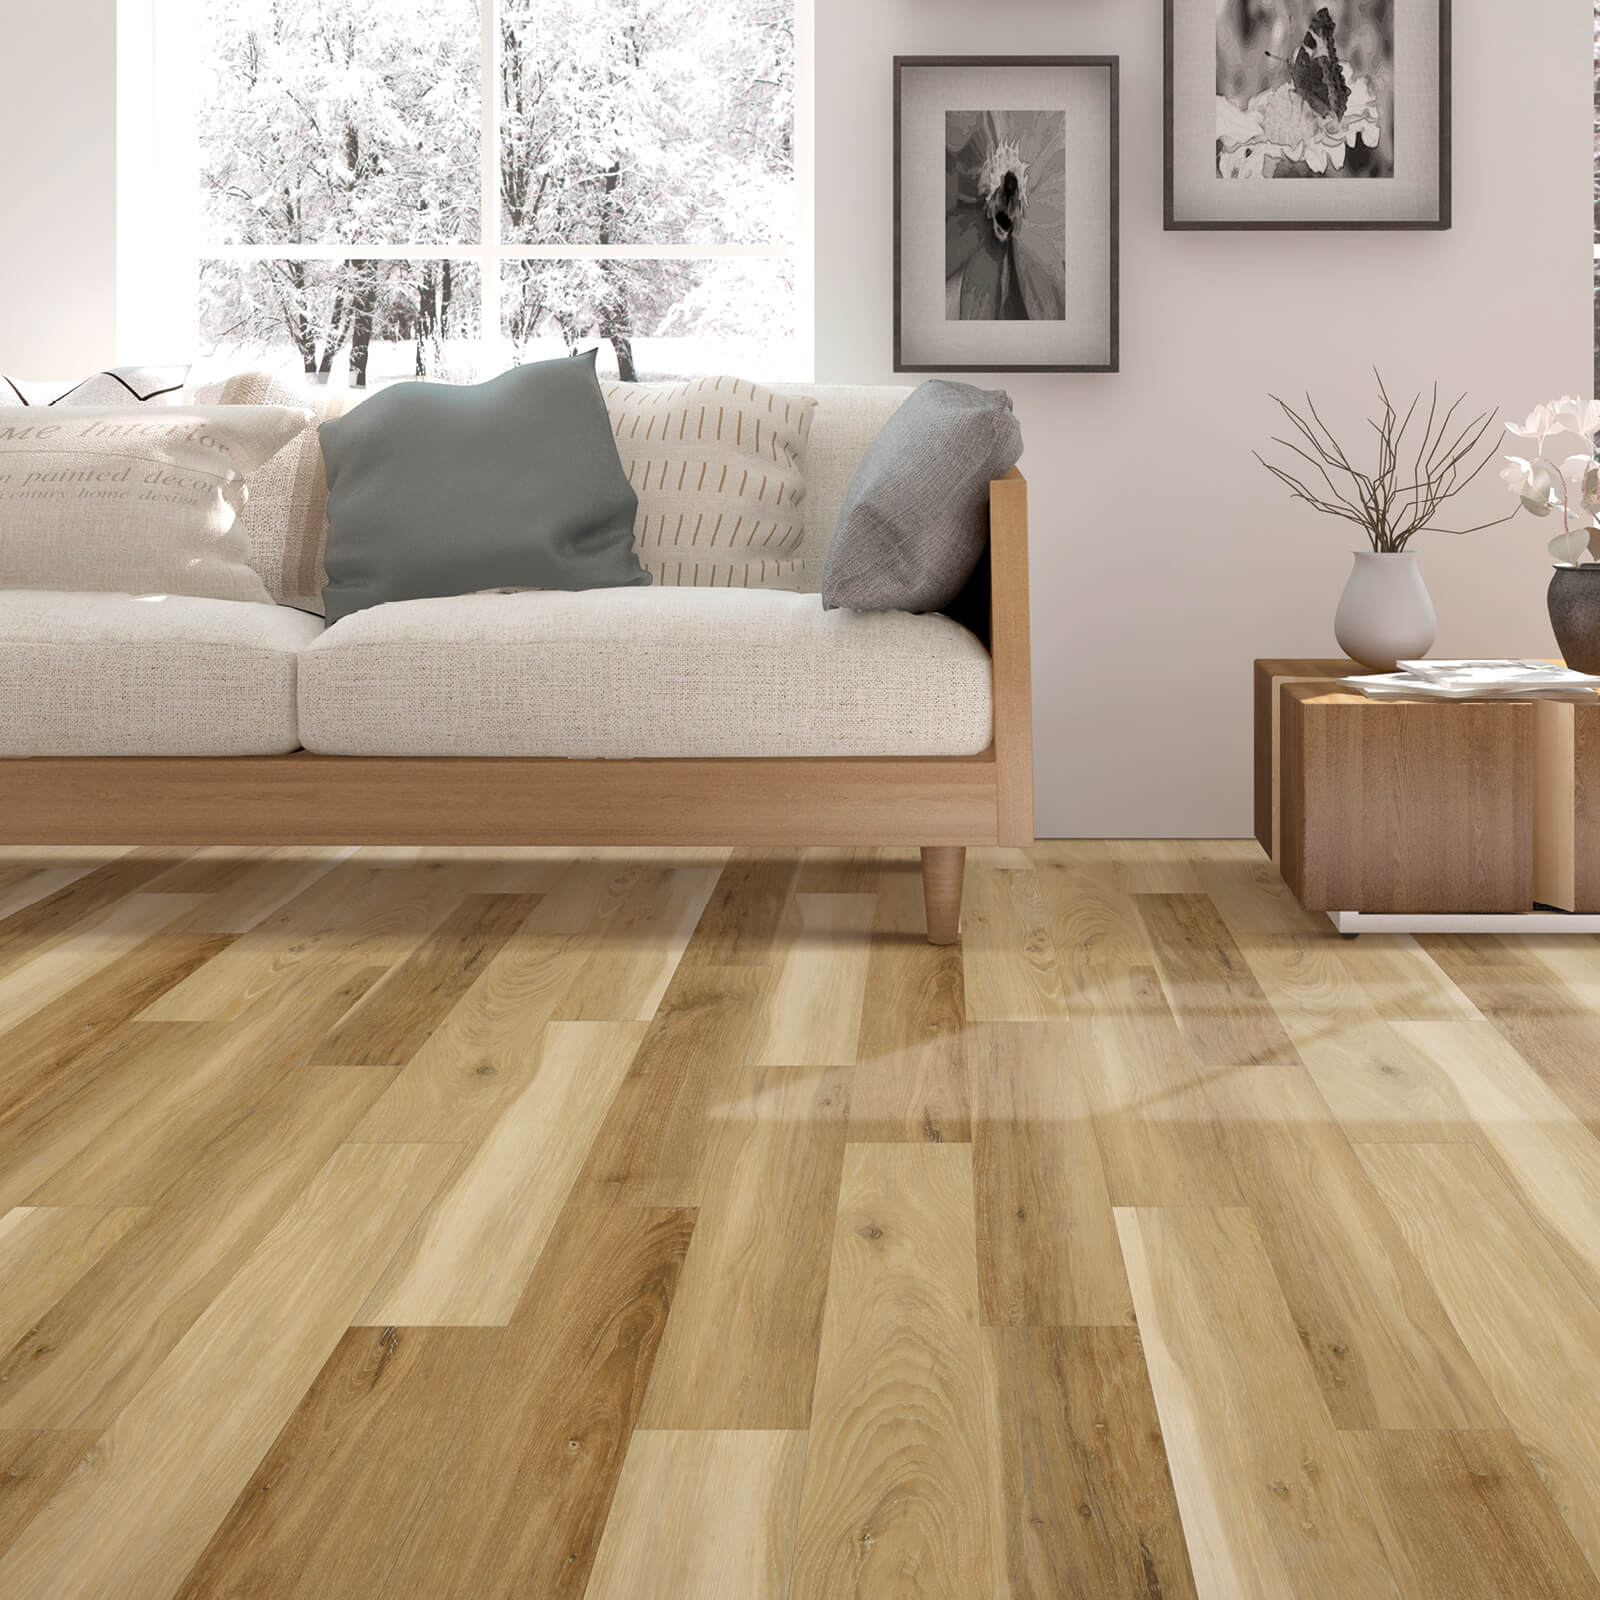 Living Room Laminate Flooring | Wacky's Flooring